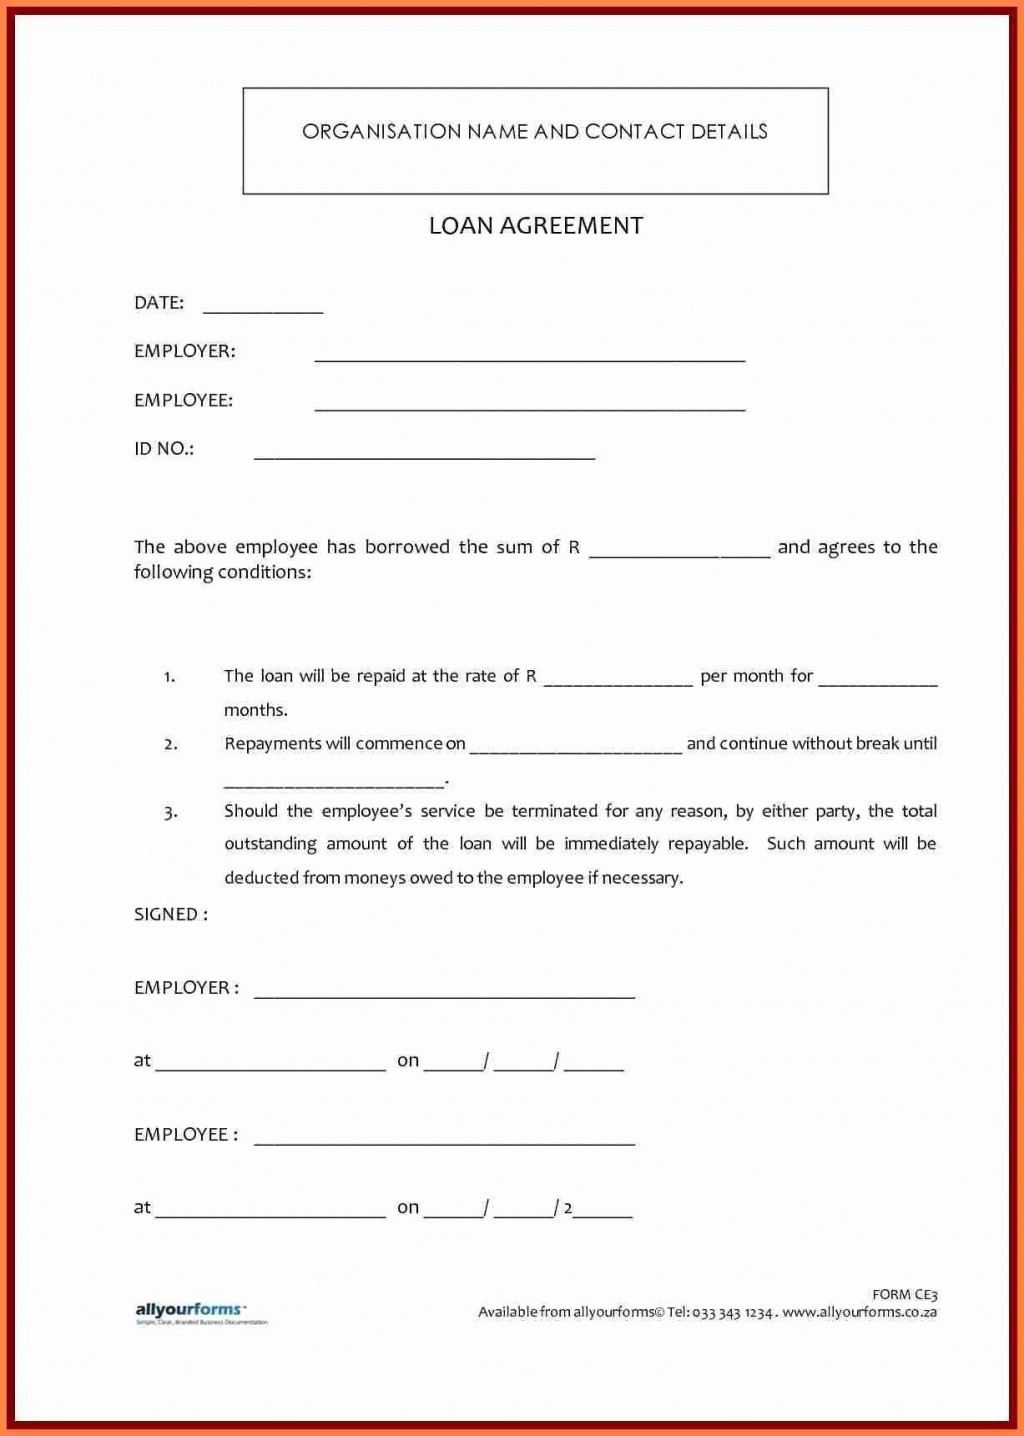 000 Impressive Simple Family Loan Agreement Template Australia Idea Large